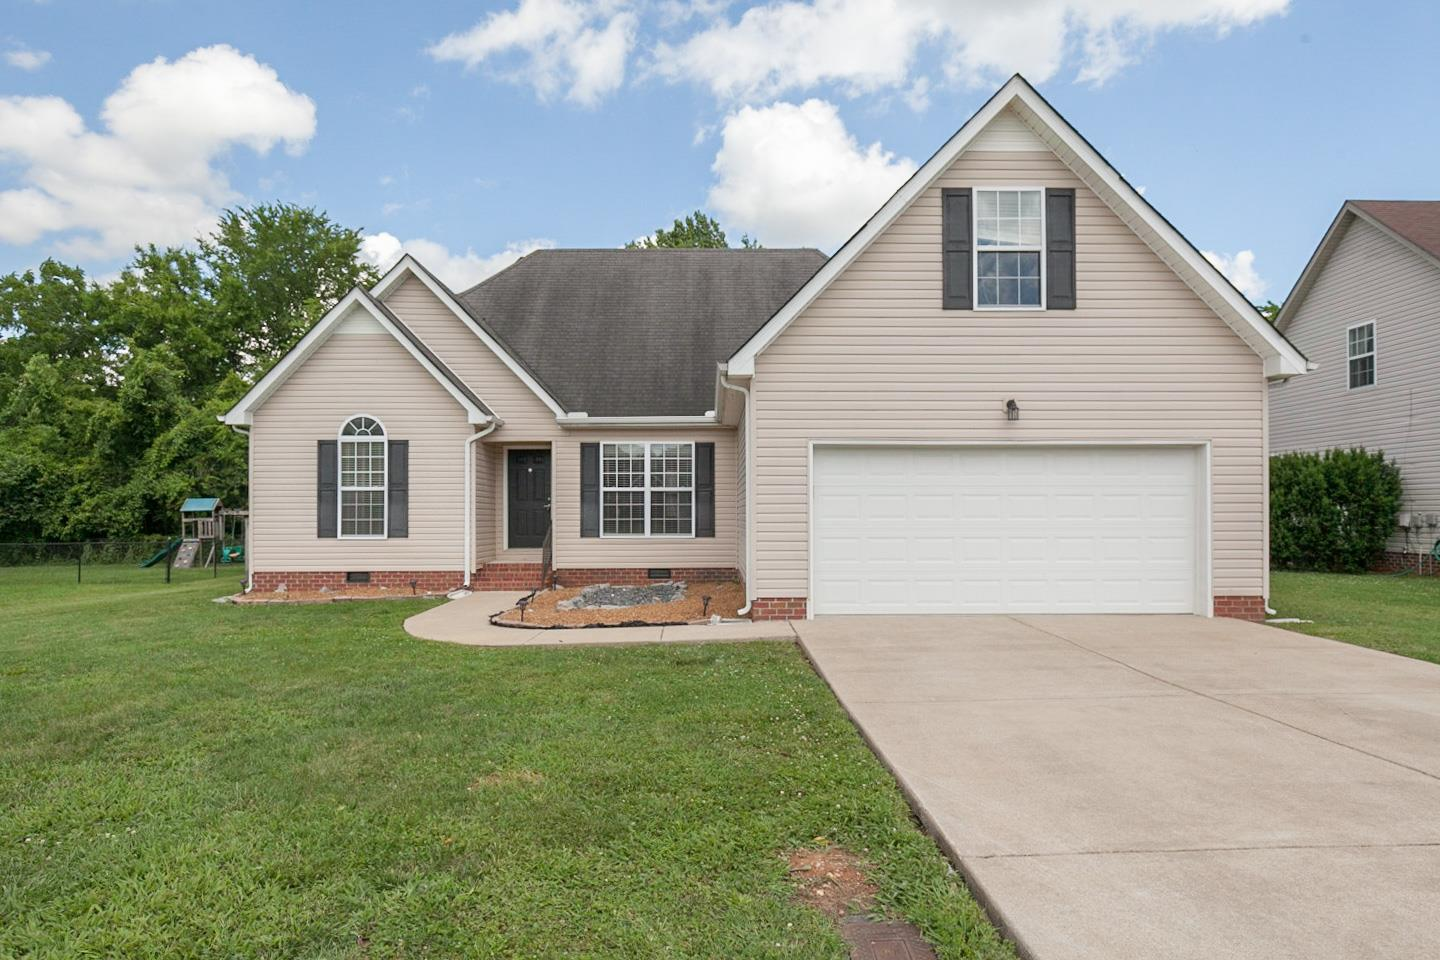 3561 Stevens Bend Dr 37127 - One of Murfreesboro Homes for Sale